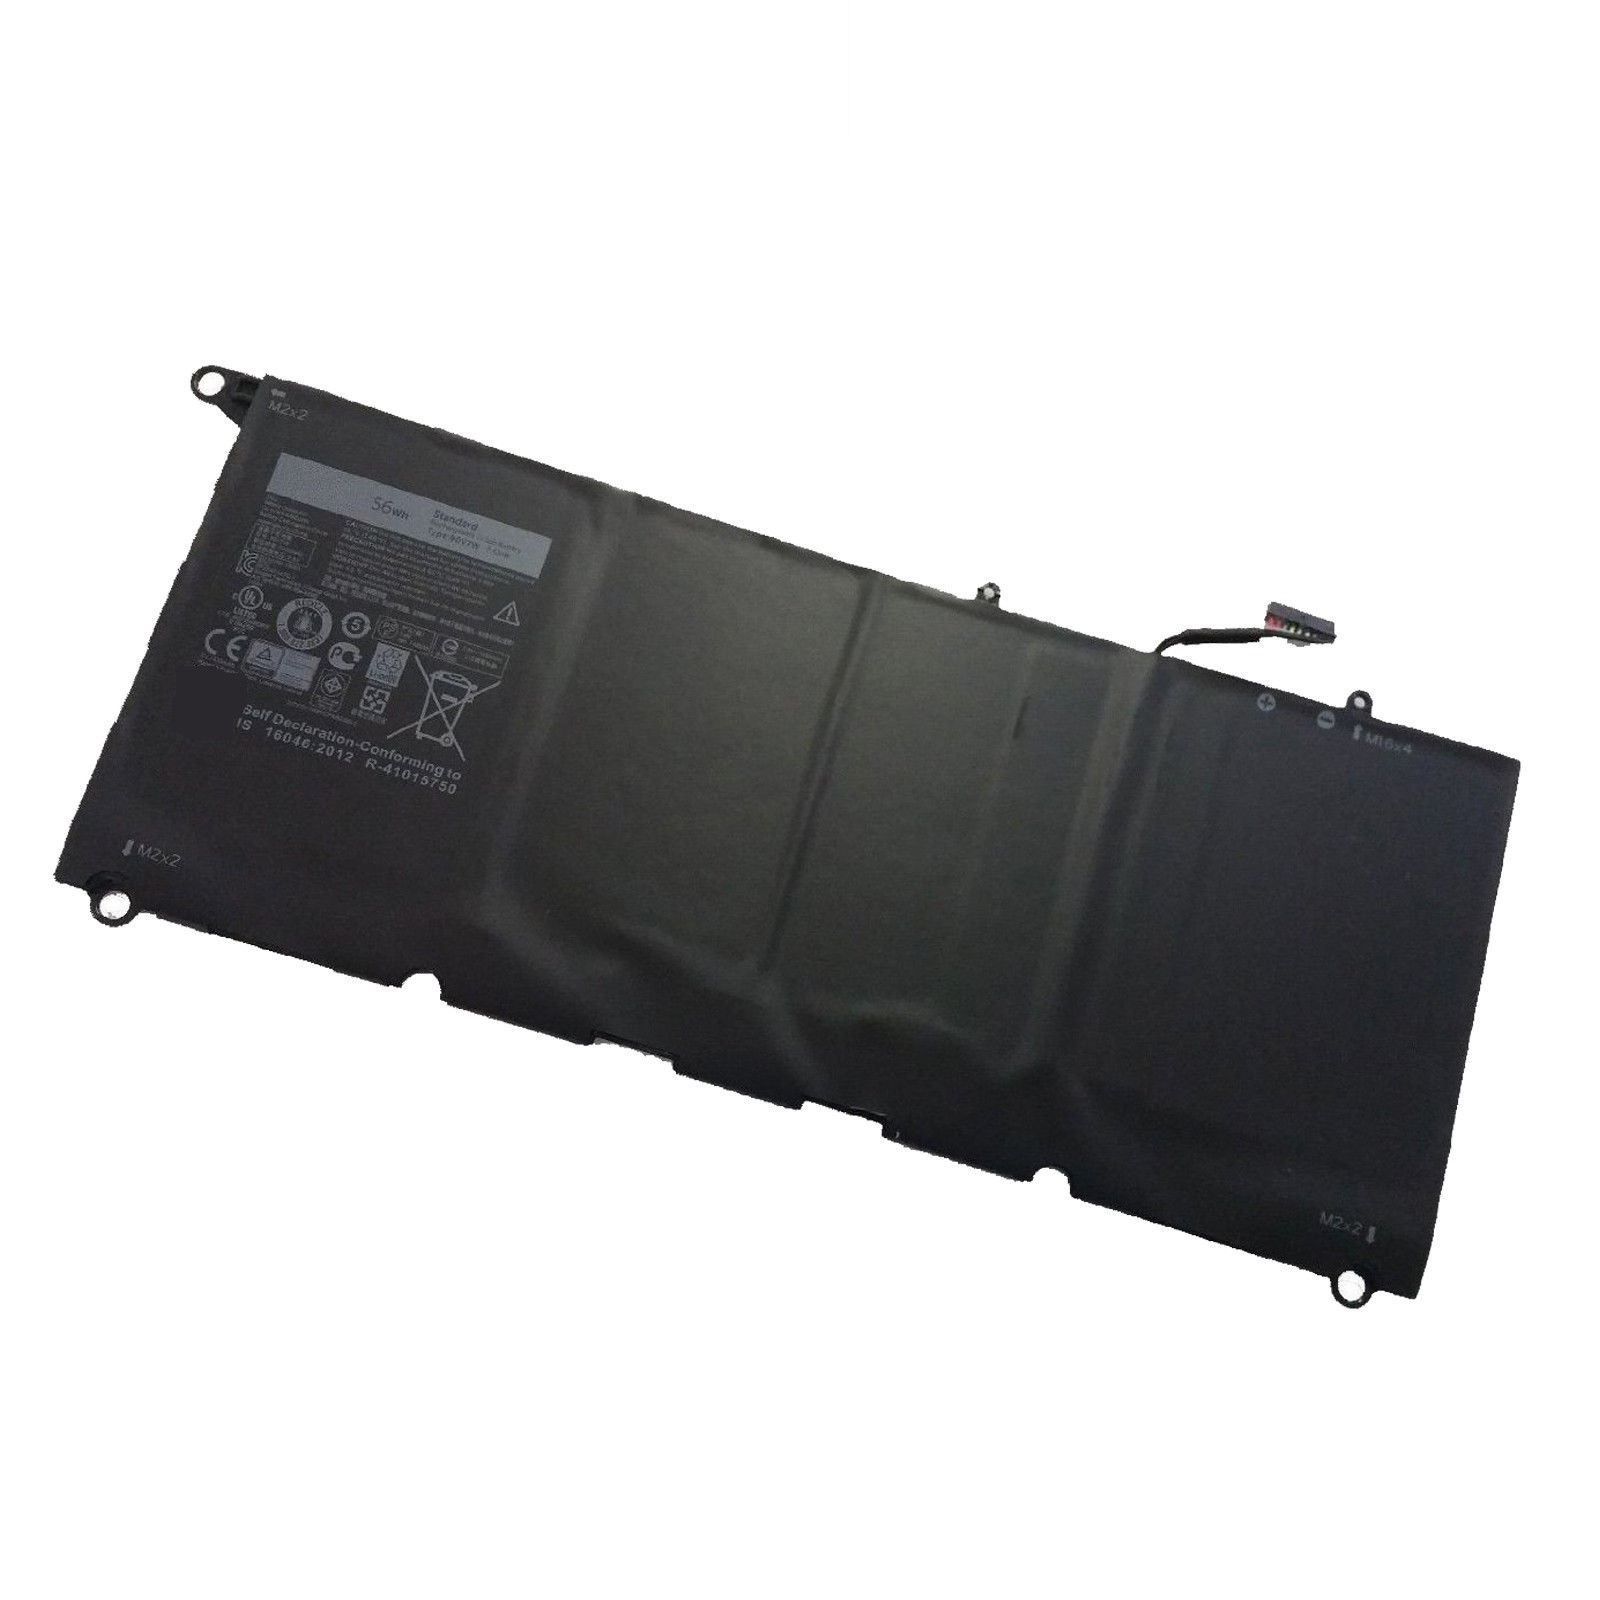 JD25G 90V7W Dell XPS13D-9343-1708 Dell XPS 13 9343 7.6V 56Wh compatible battery